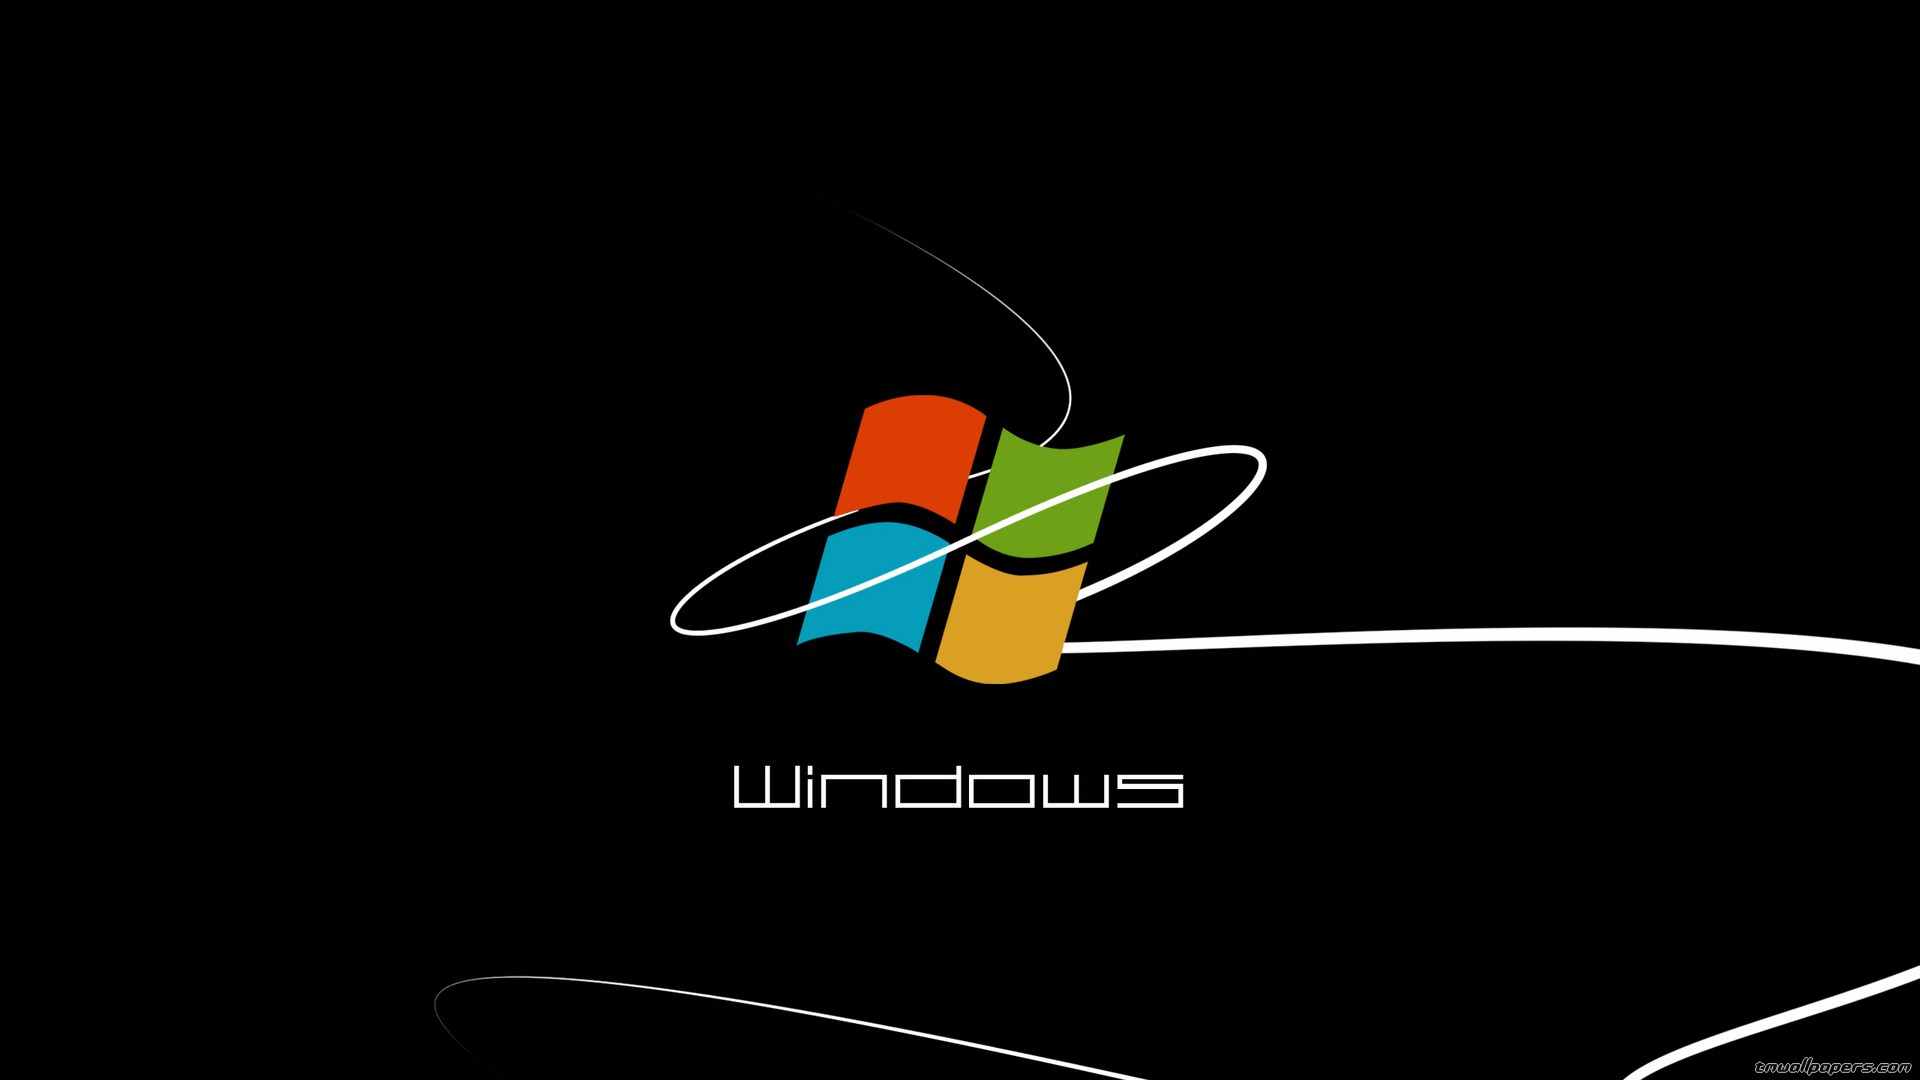 Wallpaper For Windows In HD For Download